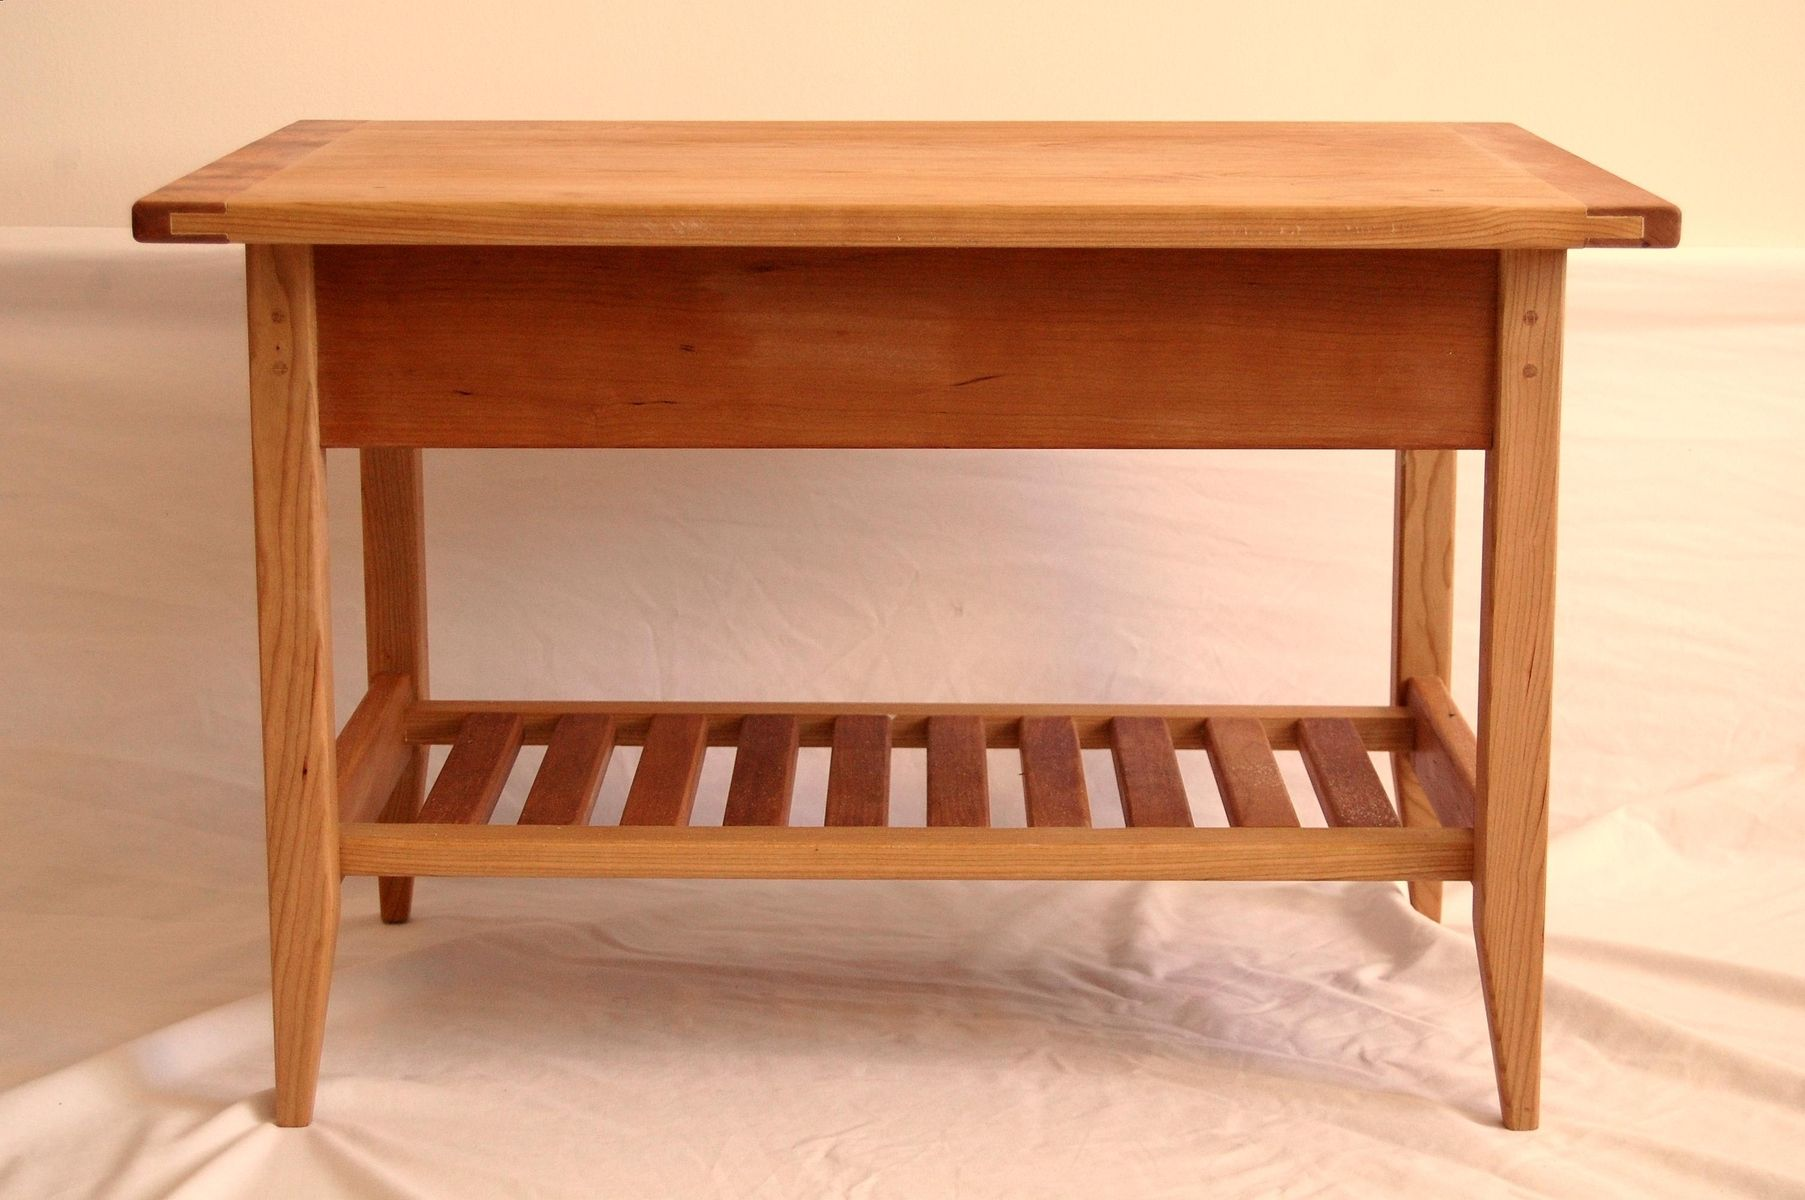 Buy a custom cherry shaker style coffee table with drawer Vogue coffee table